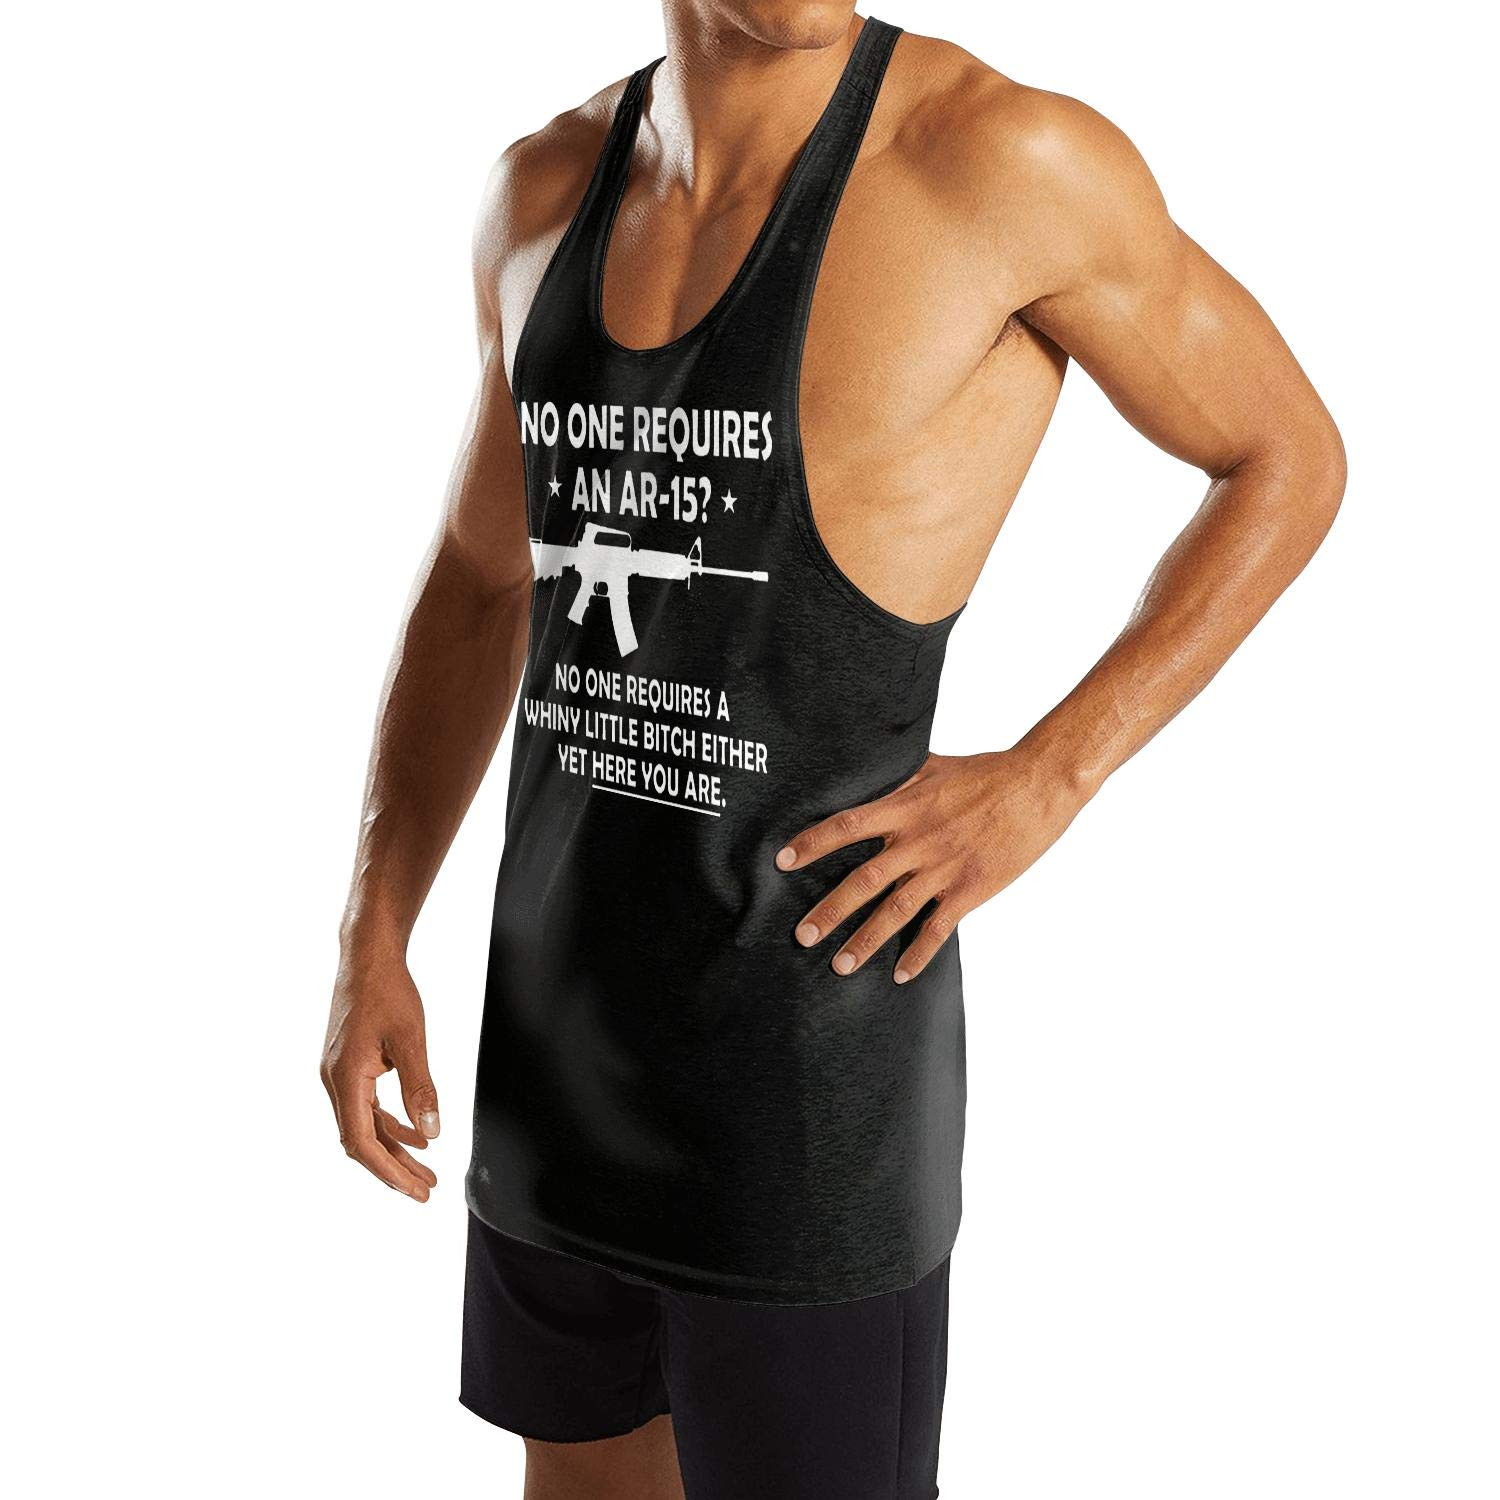 Mens Sleeveless Tank Tops NO ONE Requires an AR-15 A Whiny Bitch Vest Casual Stringer Waistcoats